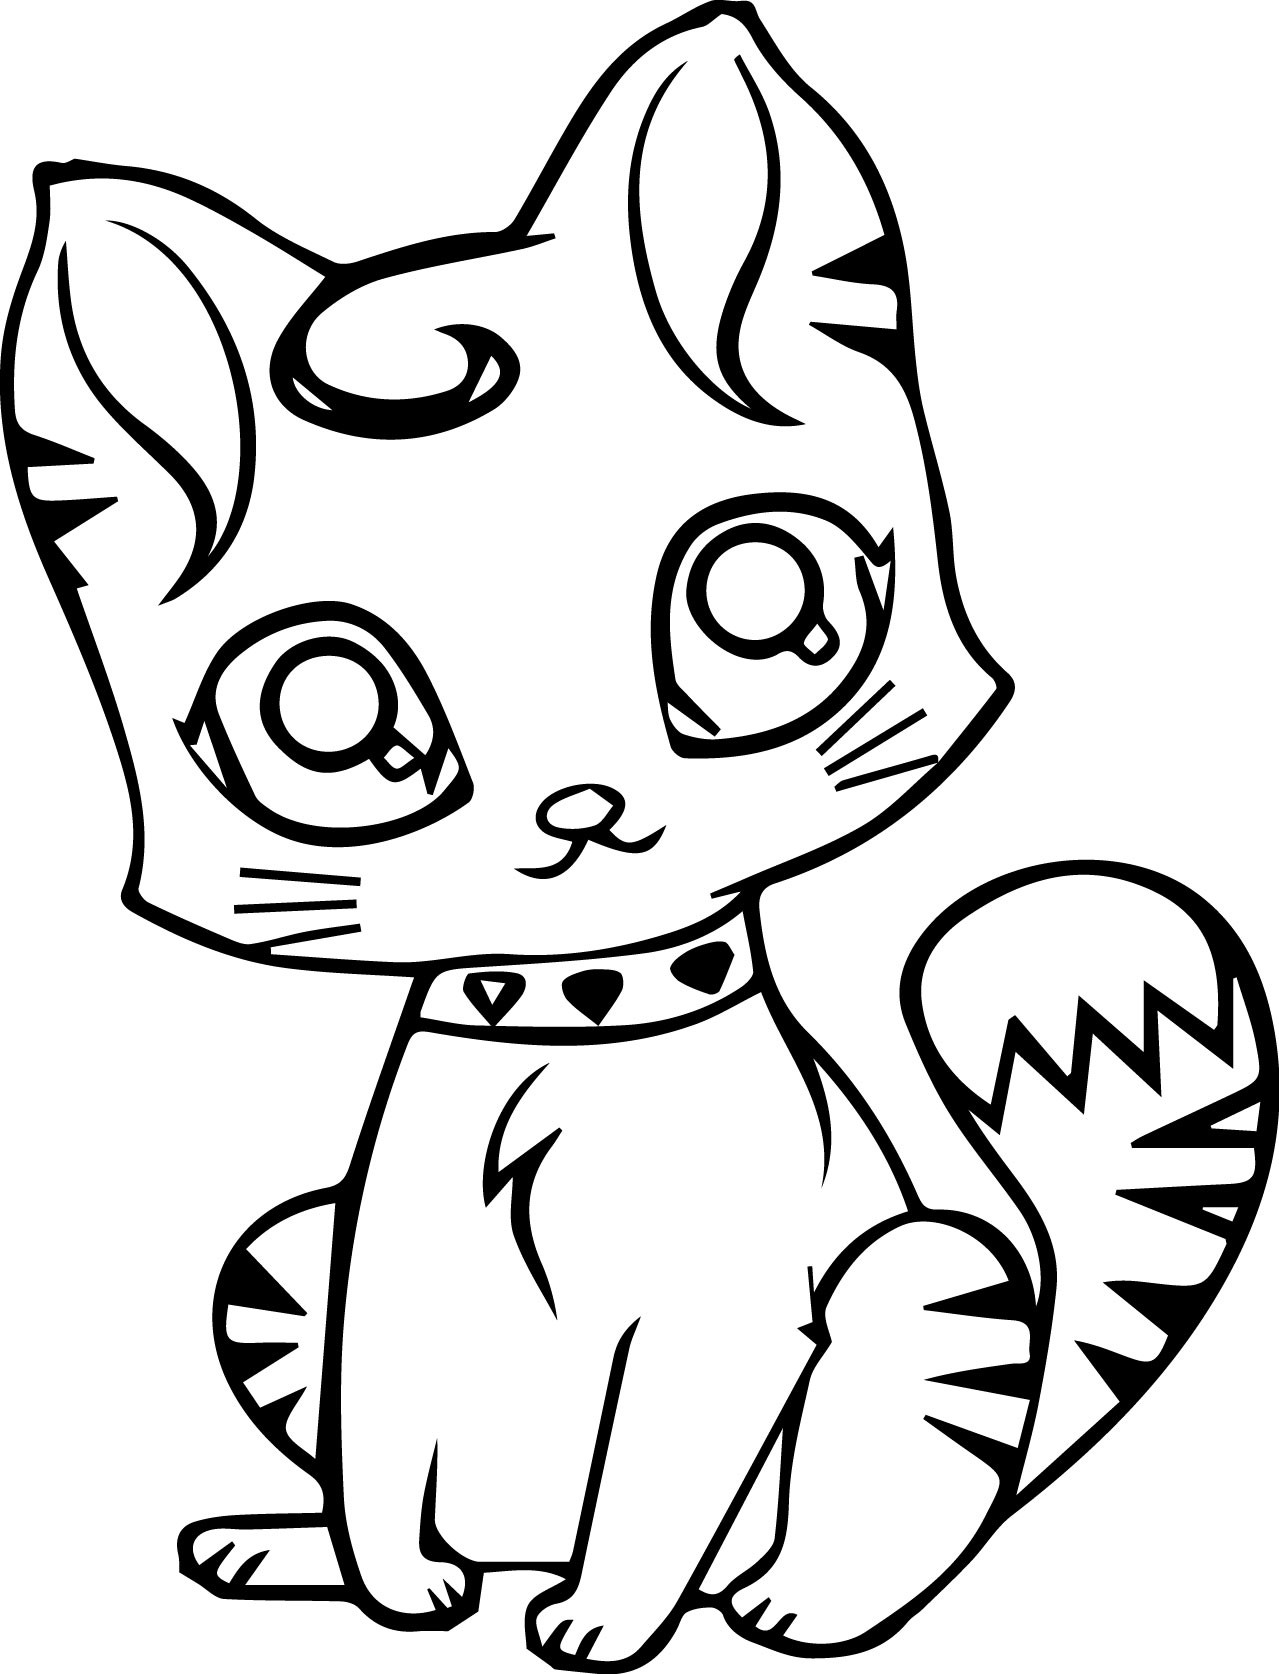 Colouring pages of cats